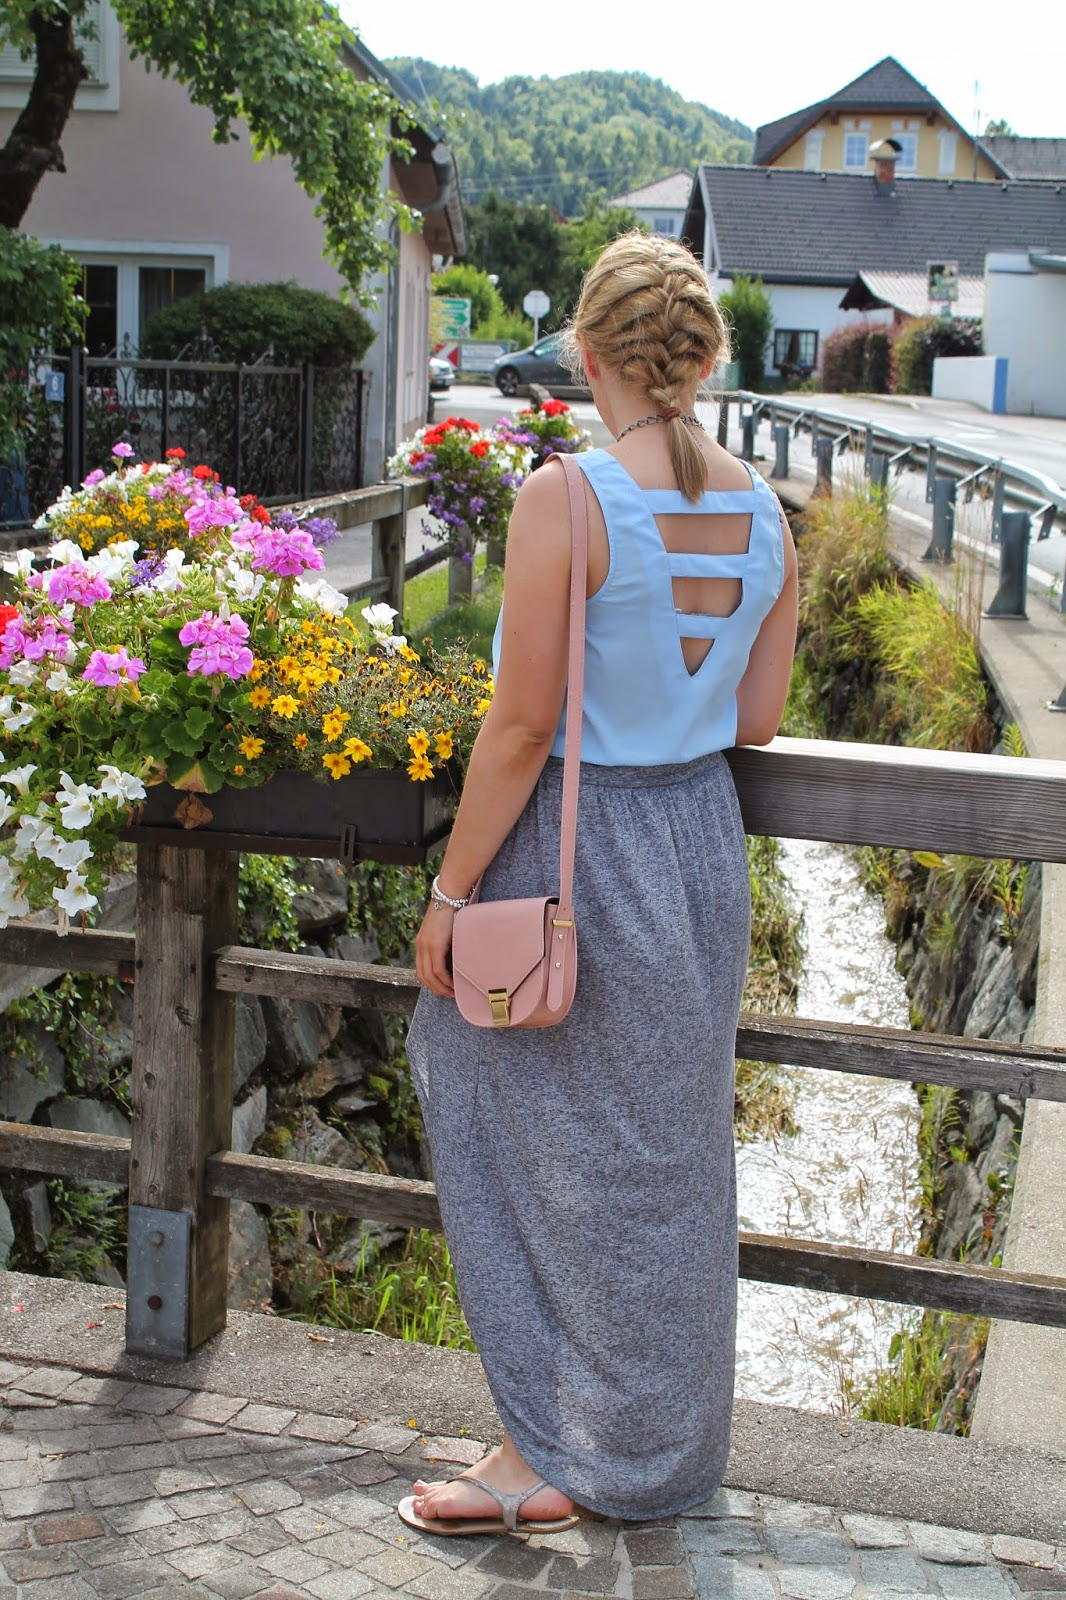 Fashionblogger Austria / Österreich / Deutsch / German / Kärnten / Carinthia / Klagenfurt / Köttmannsdorf / Spring Look / Classy / Edgy / Summer / Summer Style 2014 / Summer Look / Fashionista Look / Oasap Statement Necklace / Only / Topshop / Forever 21 / Zara /